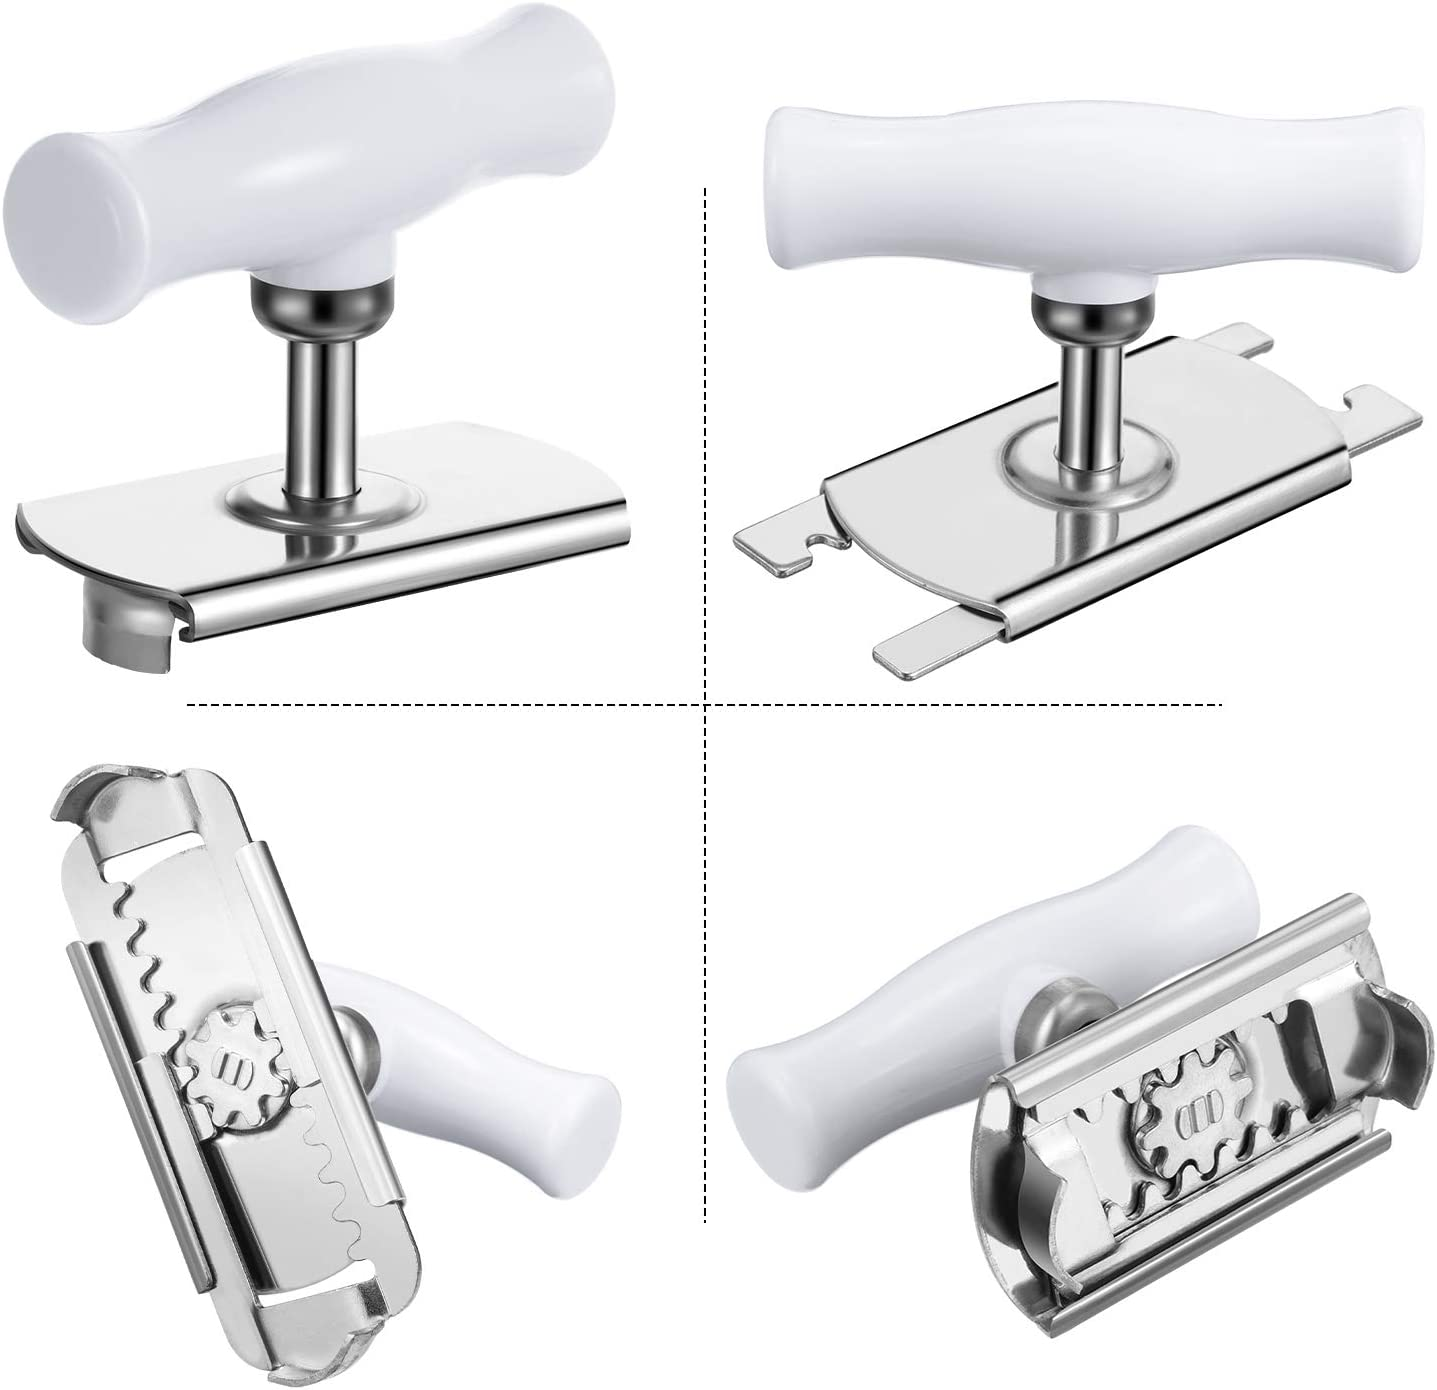 Adjustable Jar Opener Stainless Steel Lids Off Jar Opener and 2 Pieces Car Key Chain Bottle Opener for Quick Opening Tool